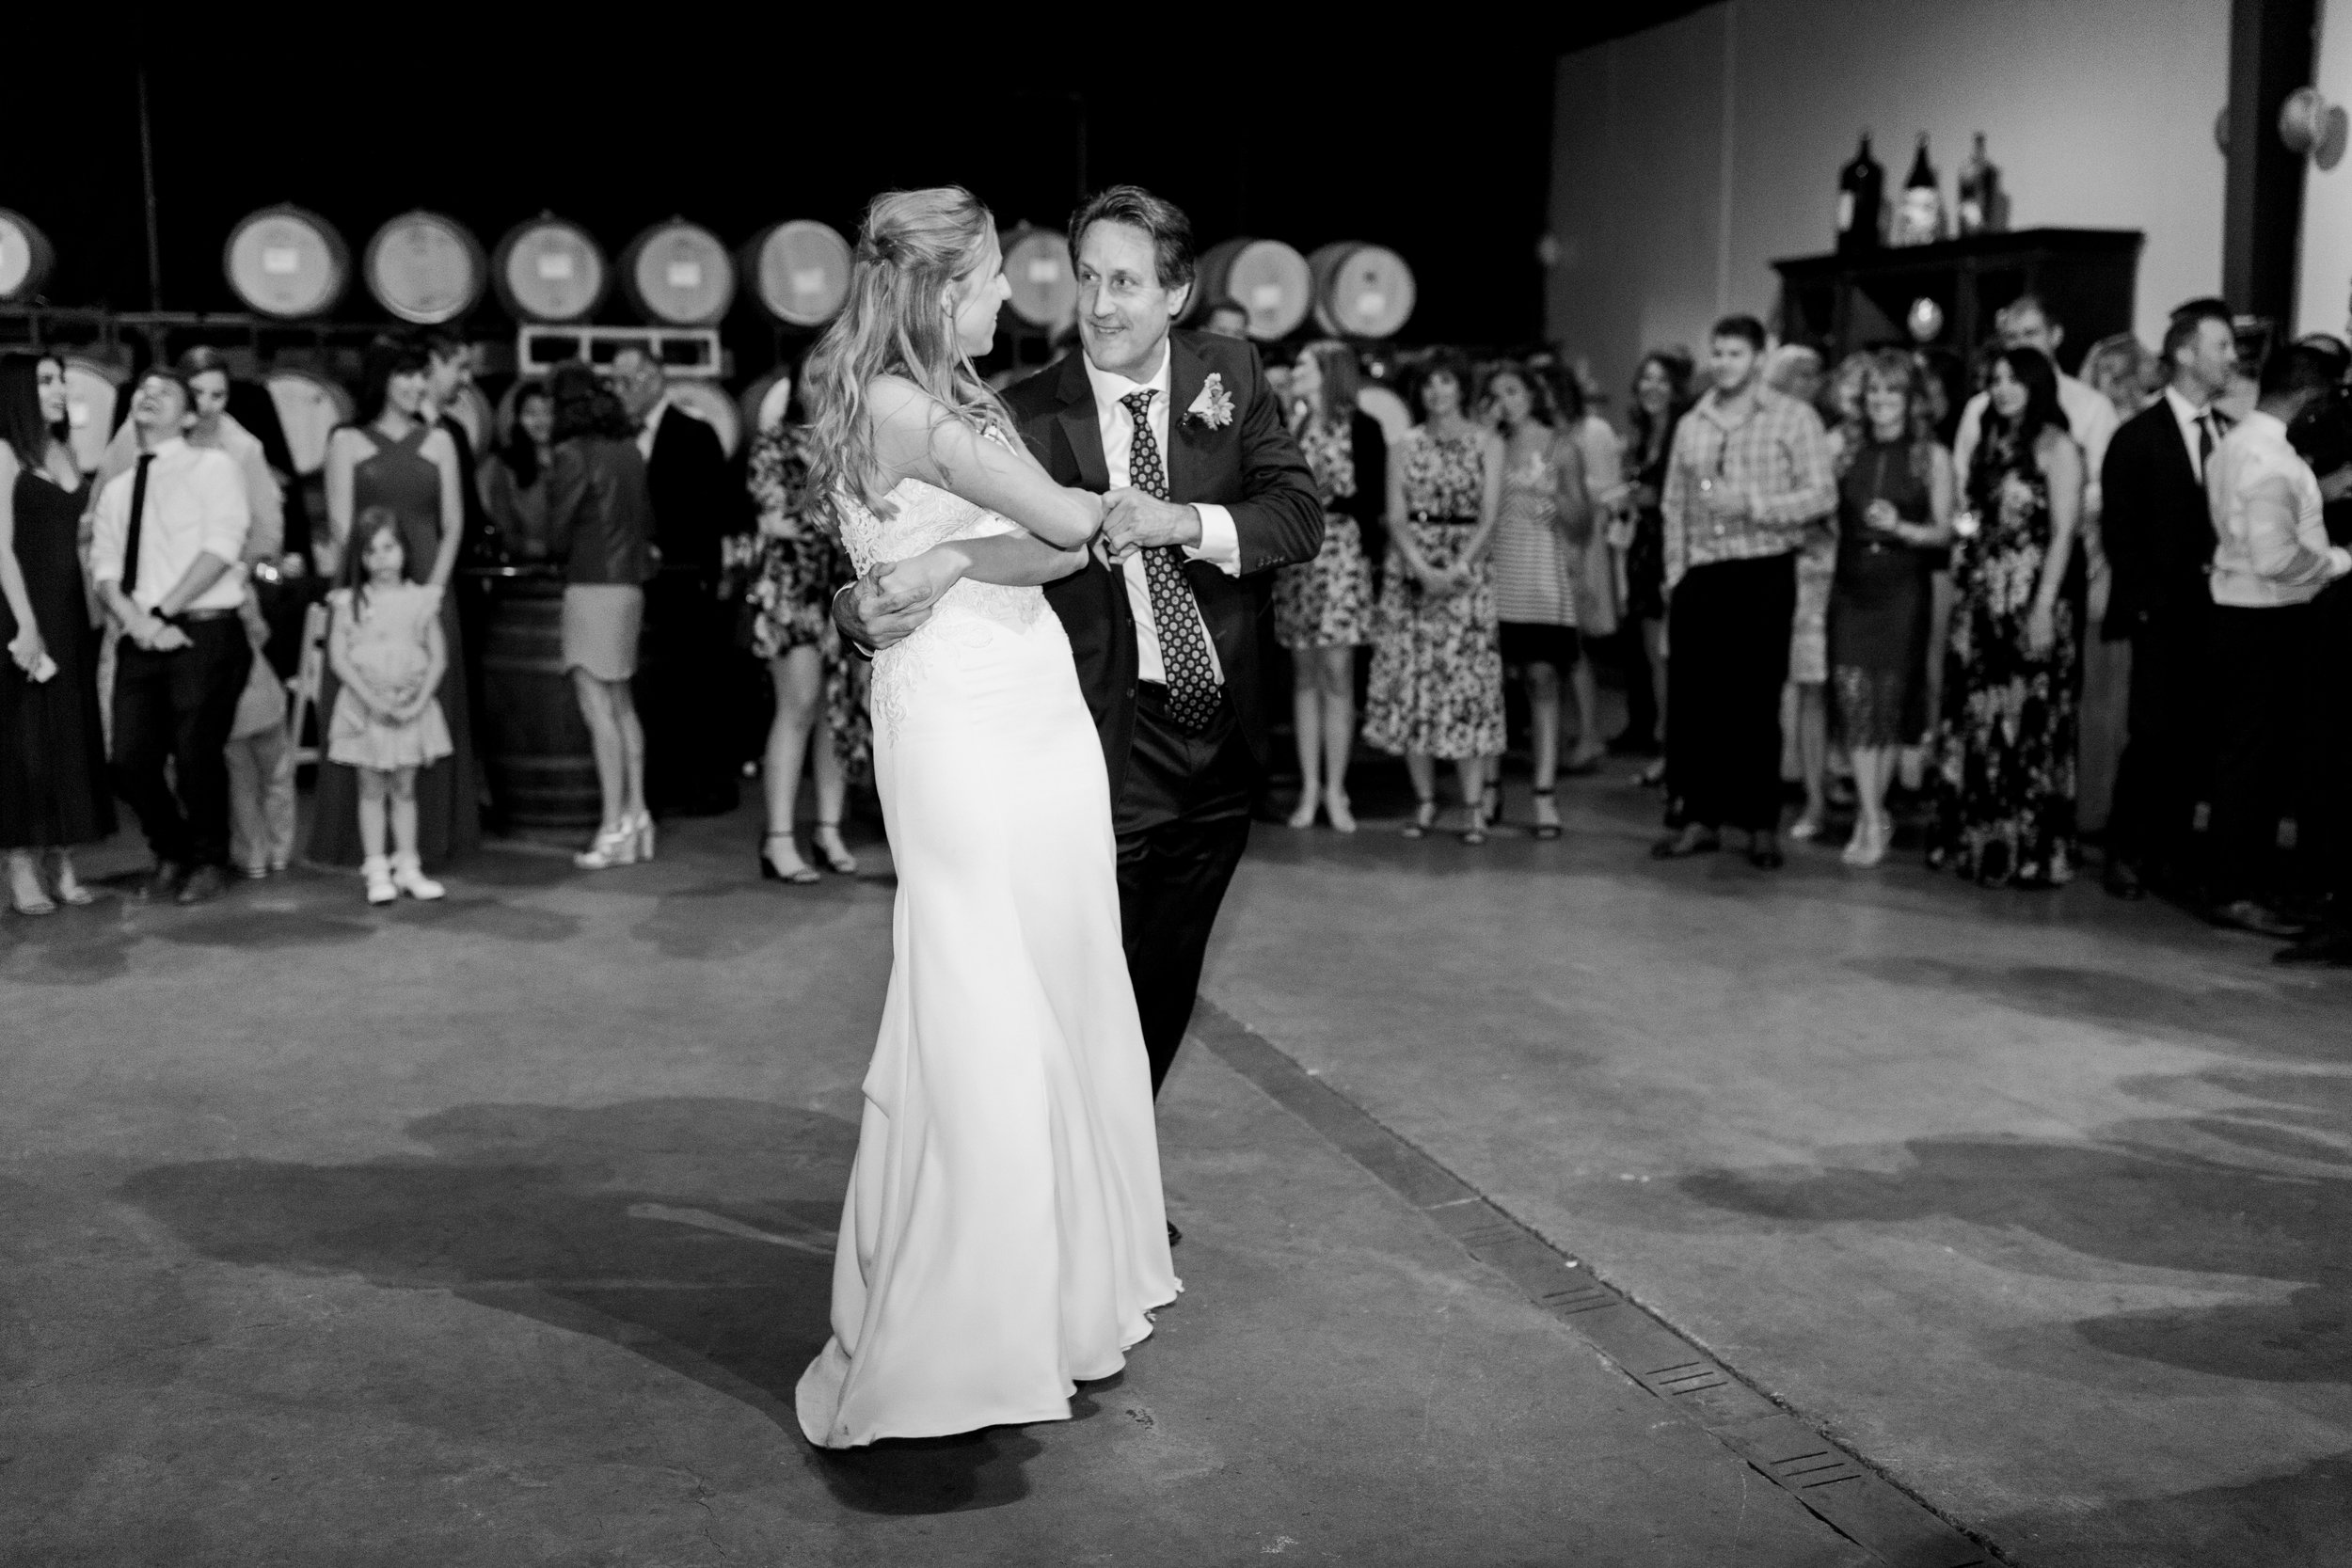 crooked-vine-winery-wedding-in-livermore-california-129.jpg